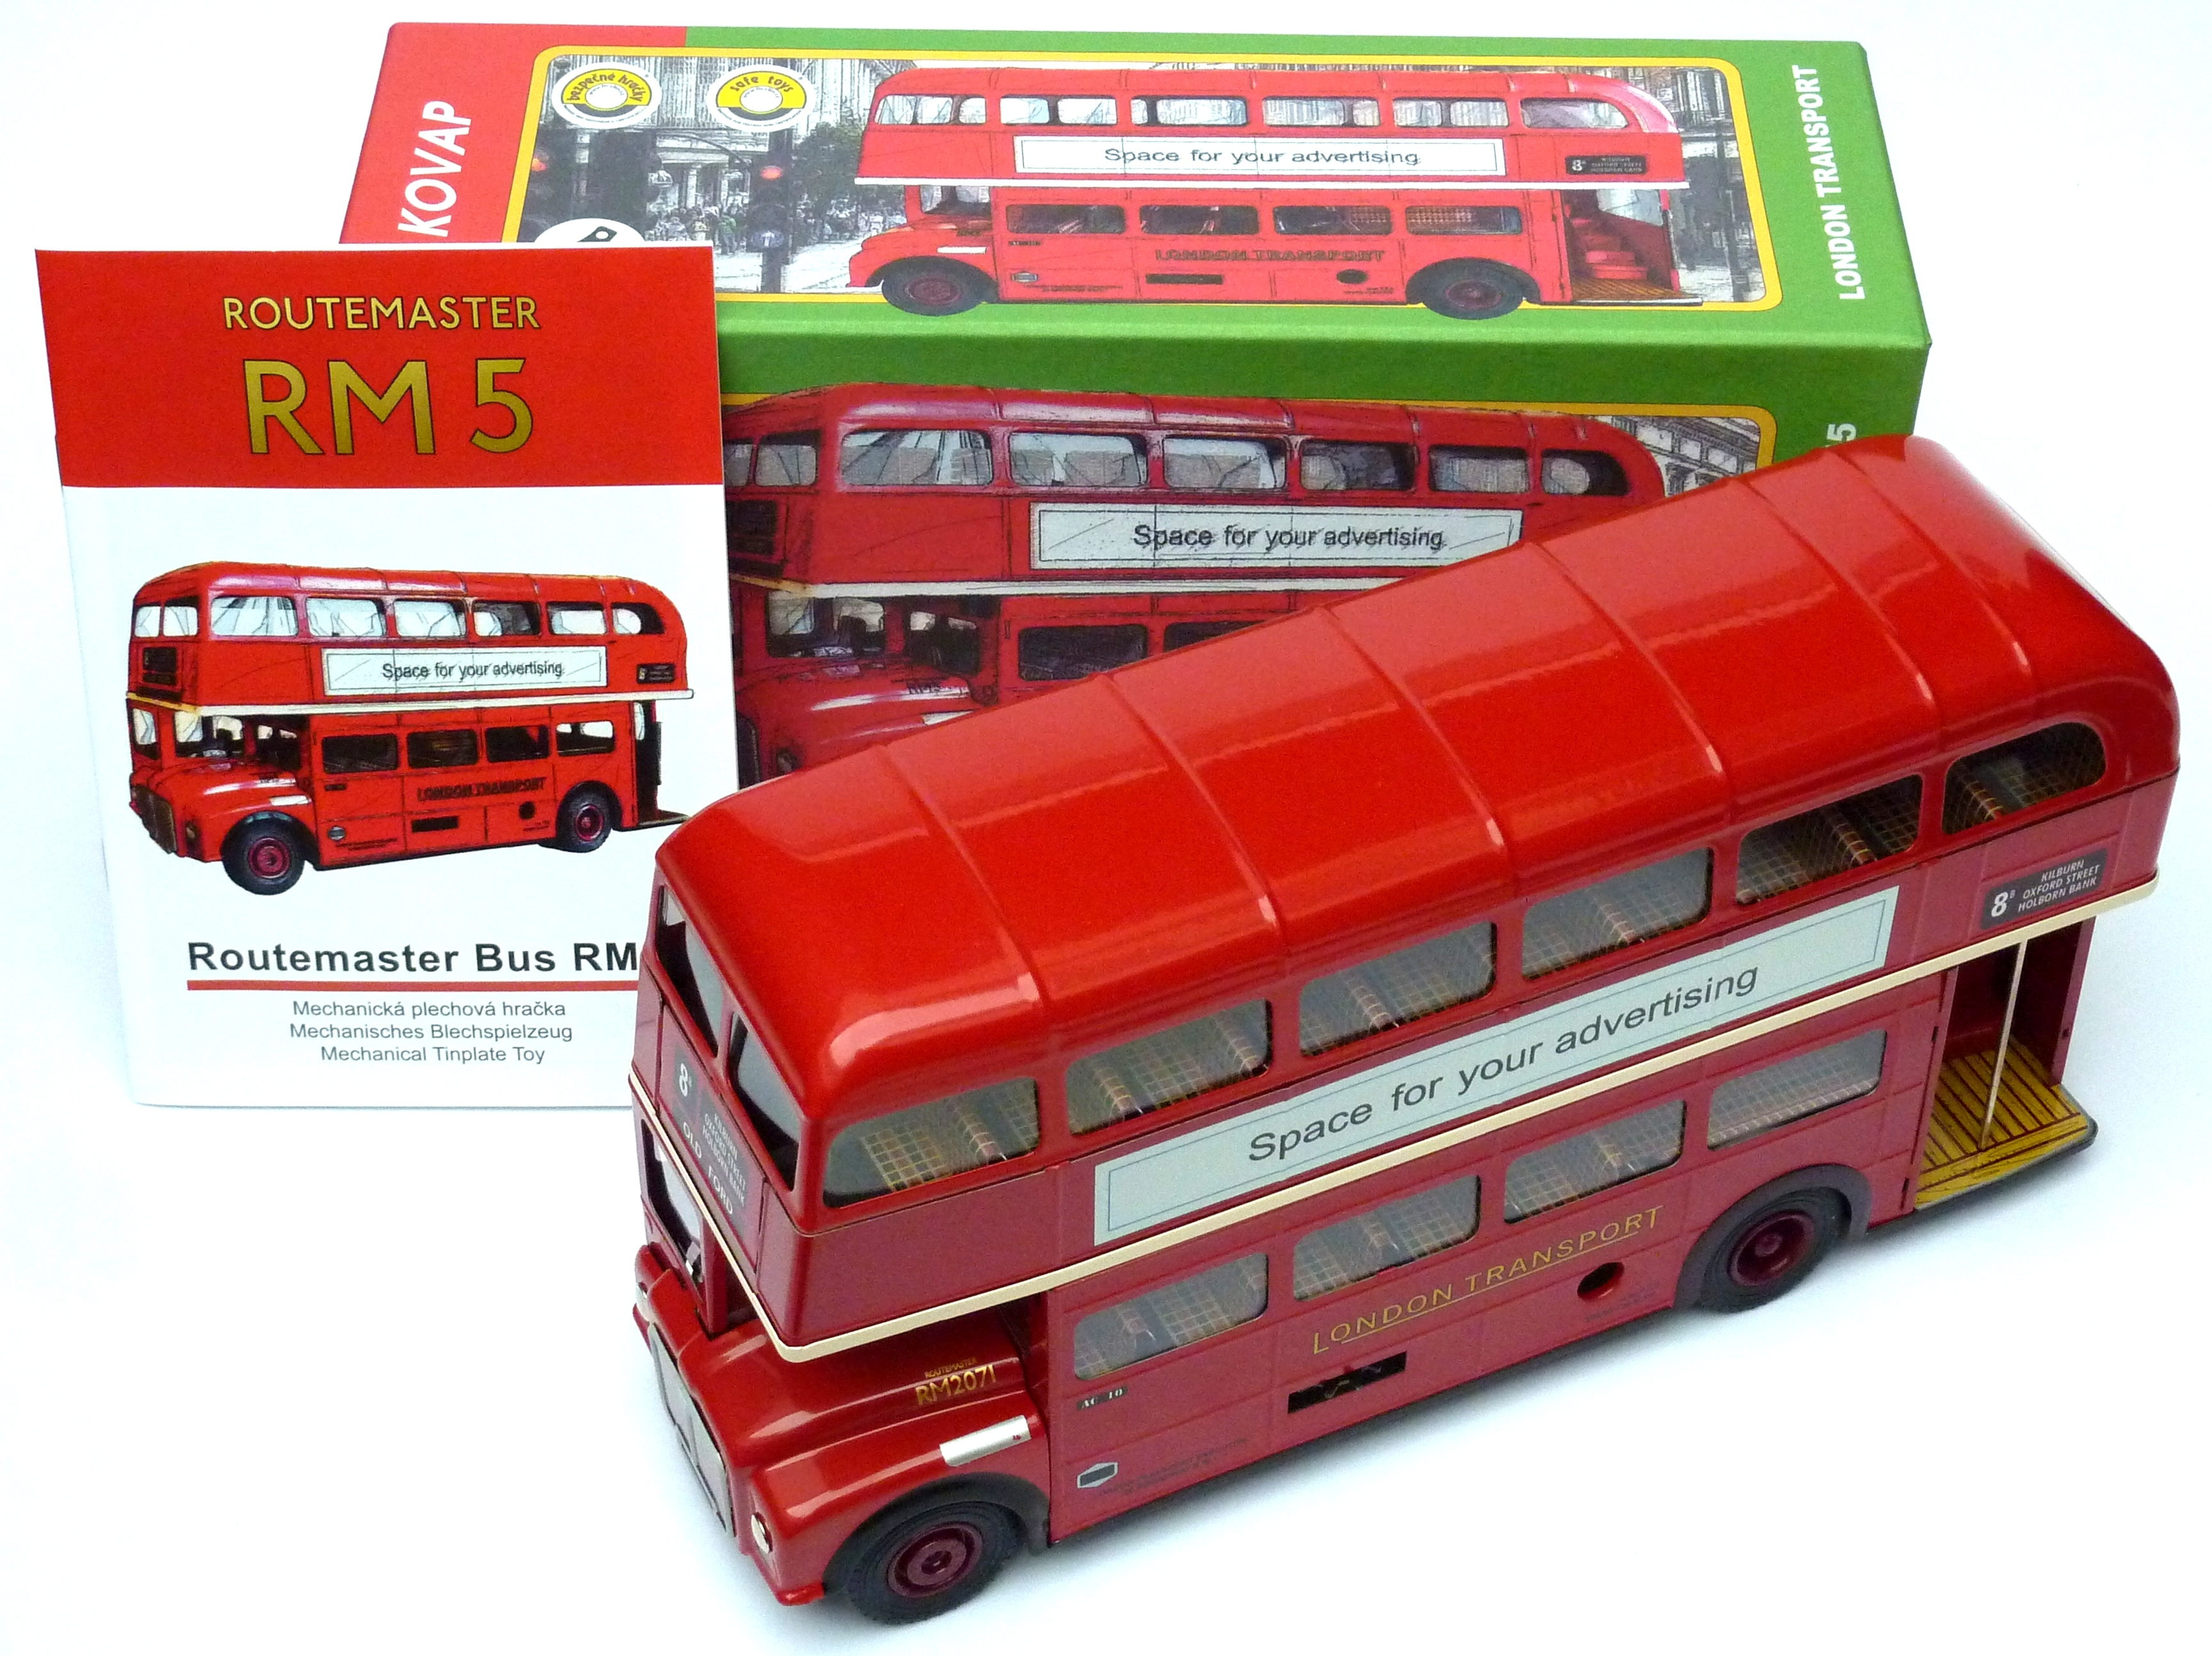 0223_Routemaster_RM_5_3